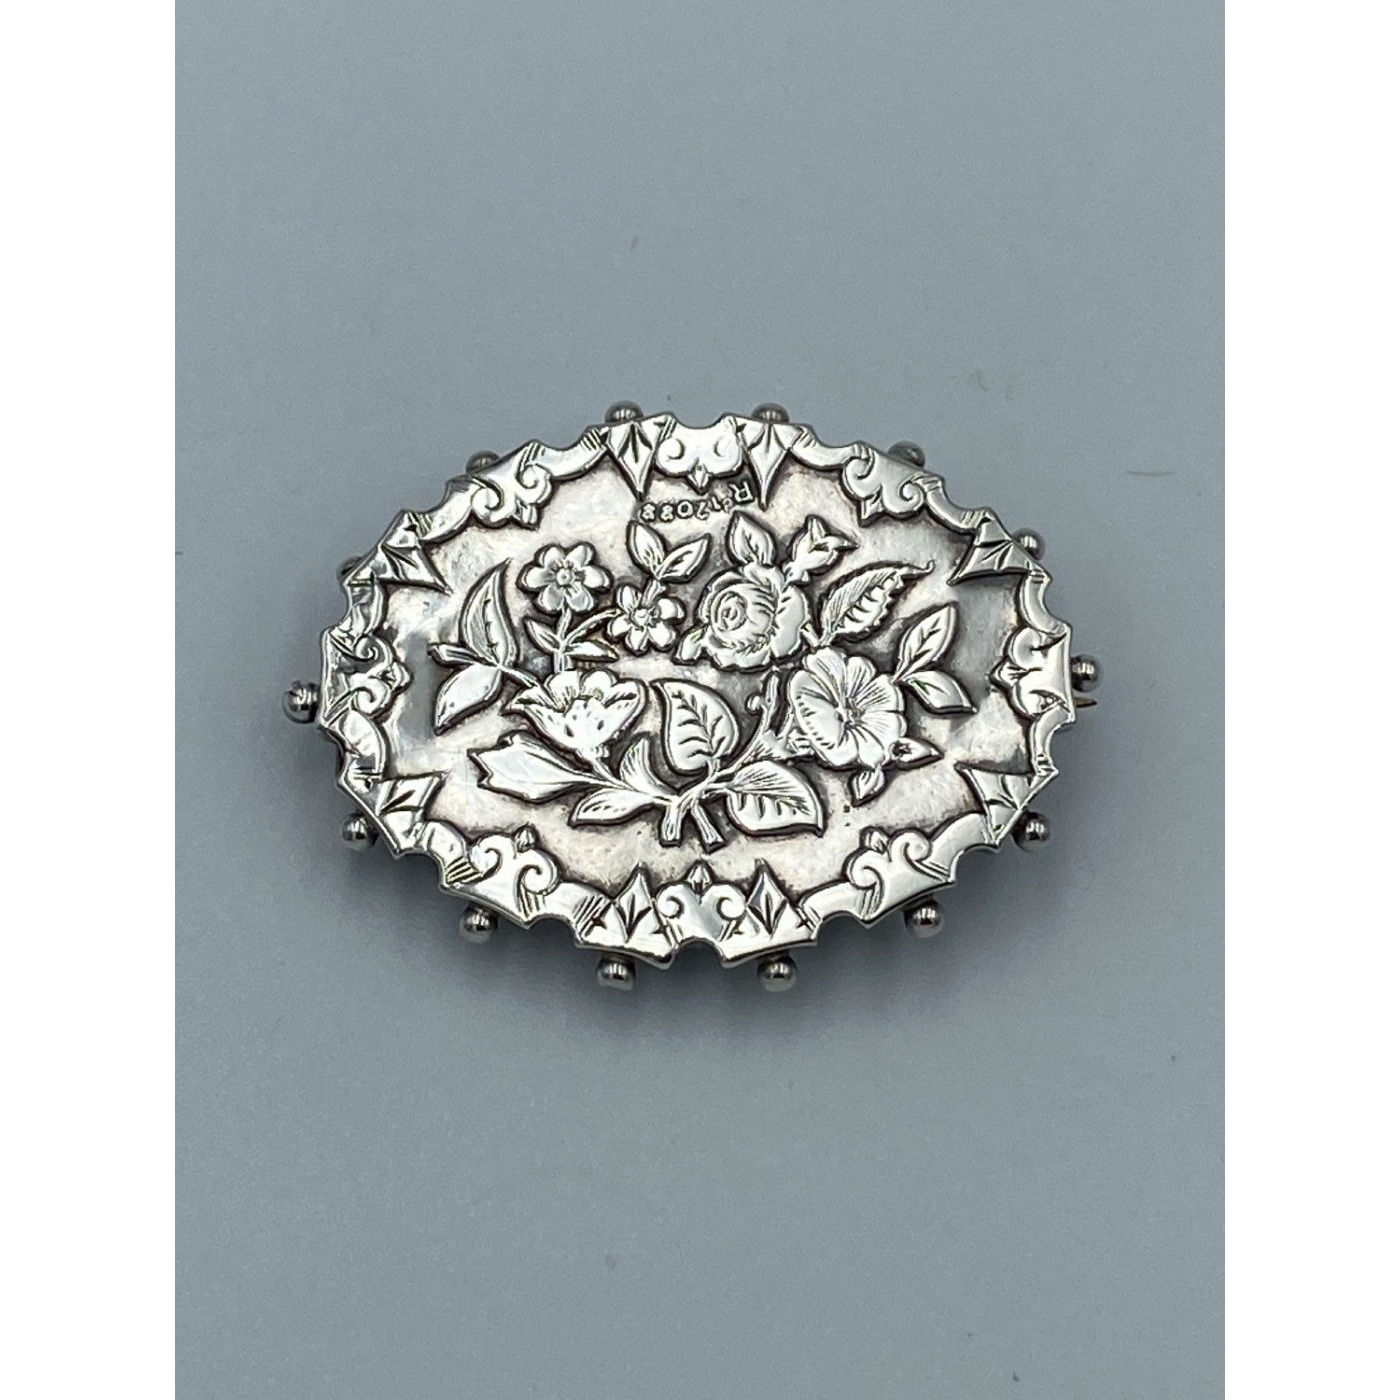 Outstanding Victorian English Silver Pin with Ornate Floral Decoration